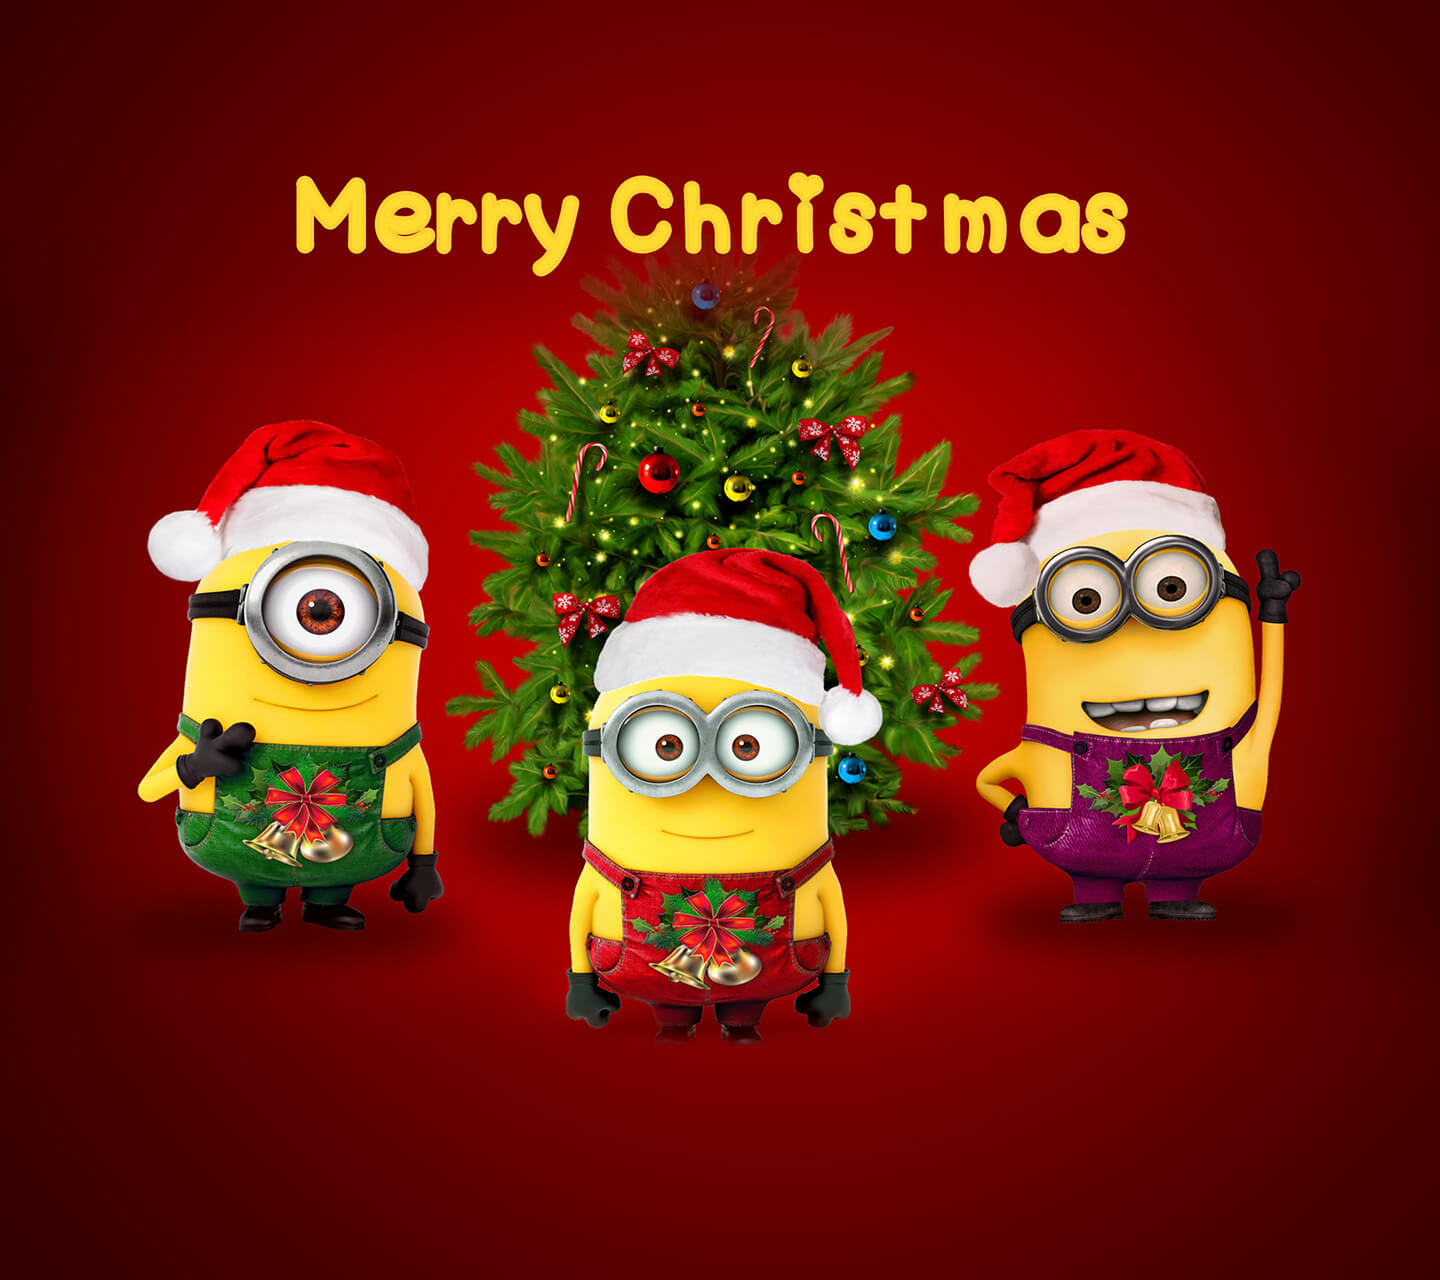 how to send attachments on iphone merry hd wallpapers and greetings 2016 19076